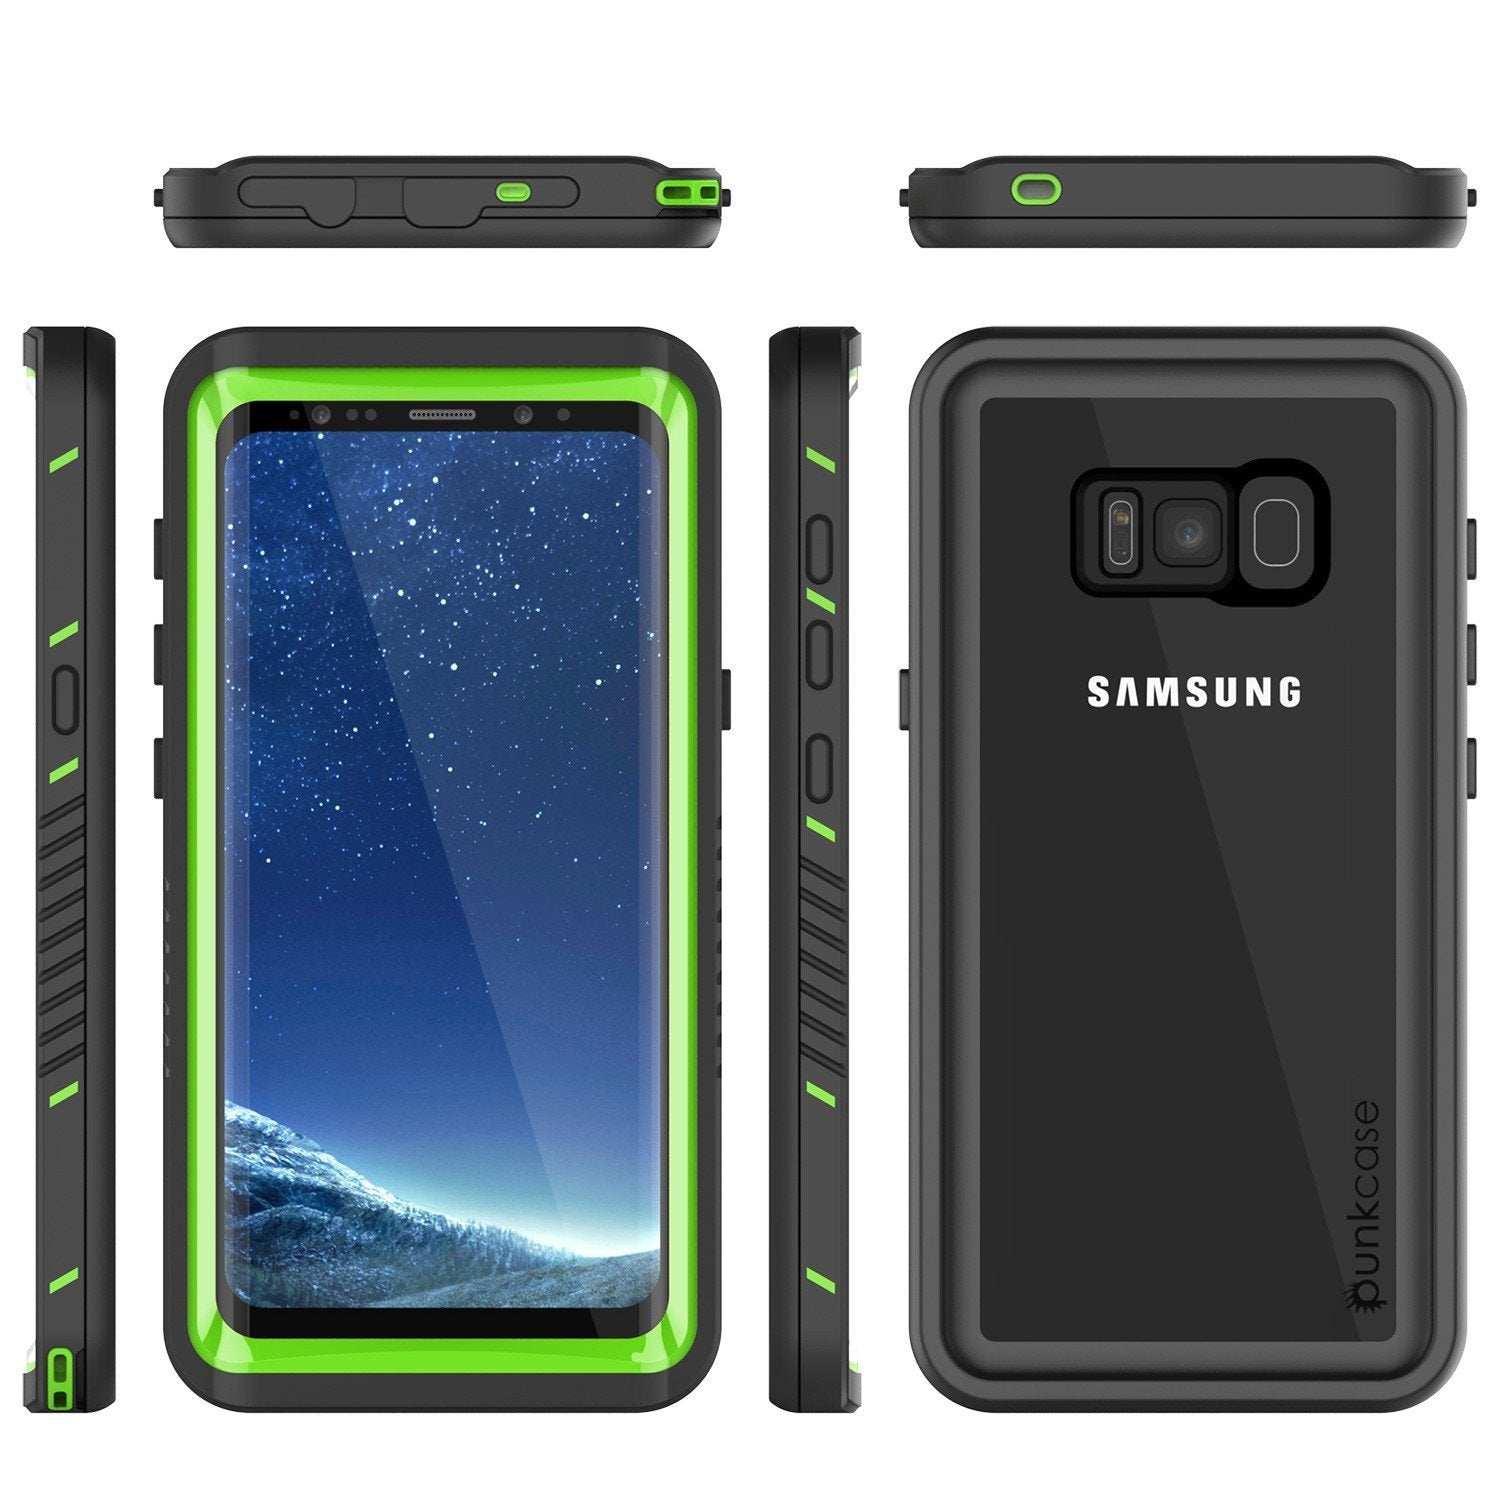 Galaxy S8 PLUS Waterproof Case, Punkcase [Extreme Series] [Slim Fit] [IP68 Certified] [Shockproof] [Snowproof] [Dirproof] Armor Cover W/ Built In Screen Protector for Samsung Galaxy S8+ [Green] - PunkCase NZ